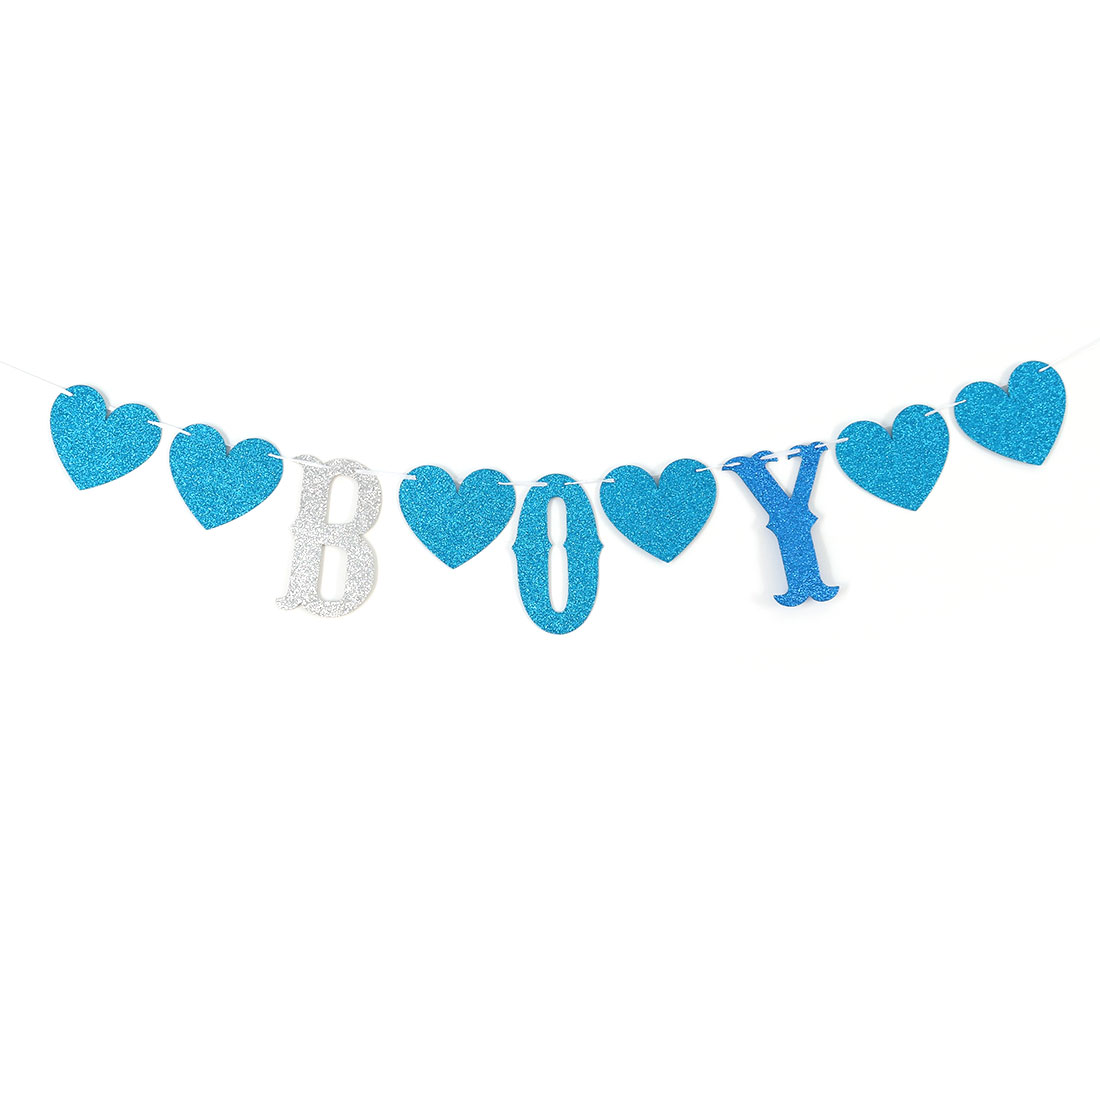 BOY Letter Print DIY Party Ornament Rope Hanging Photo Prop Bunting Banner Set